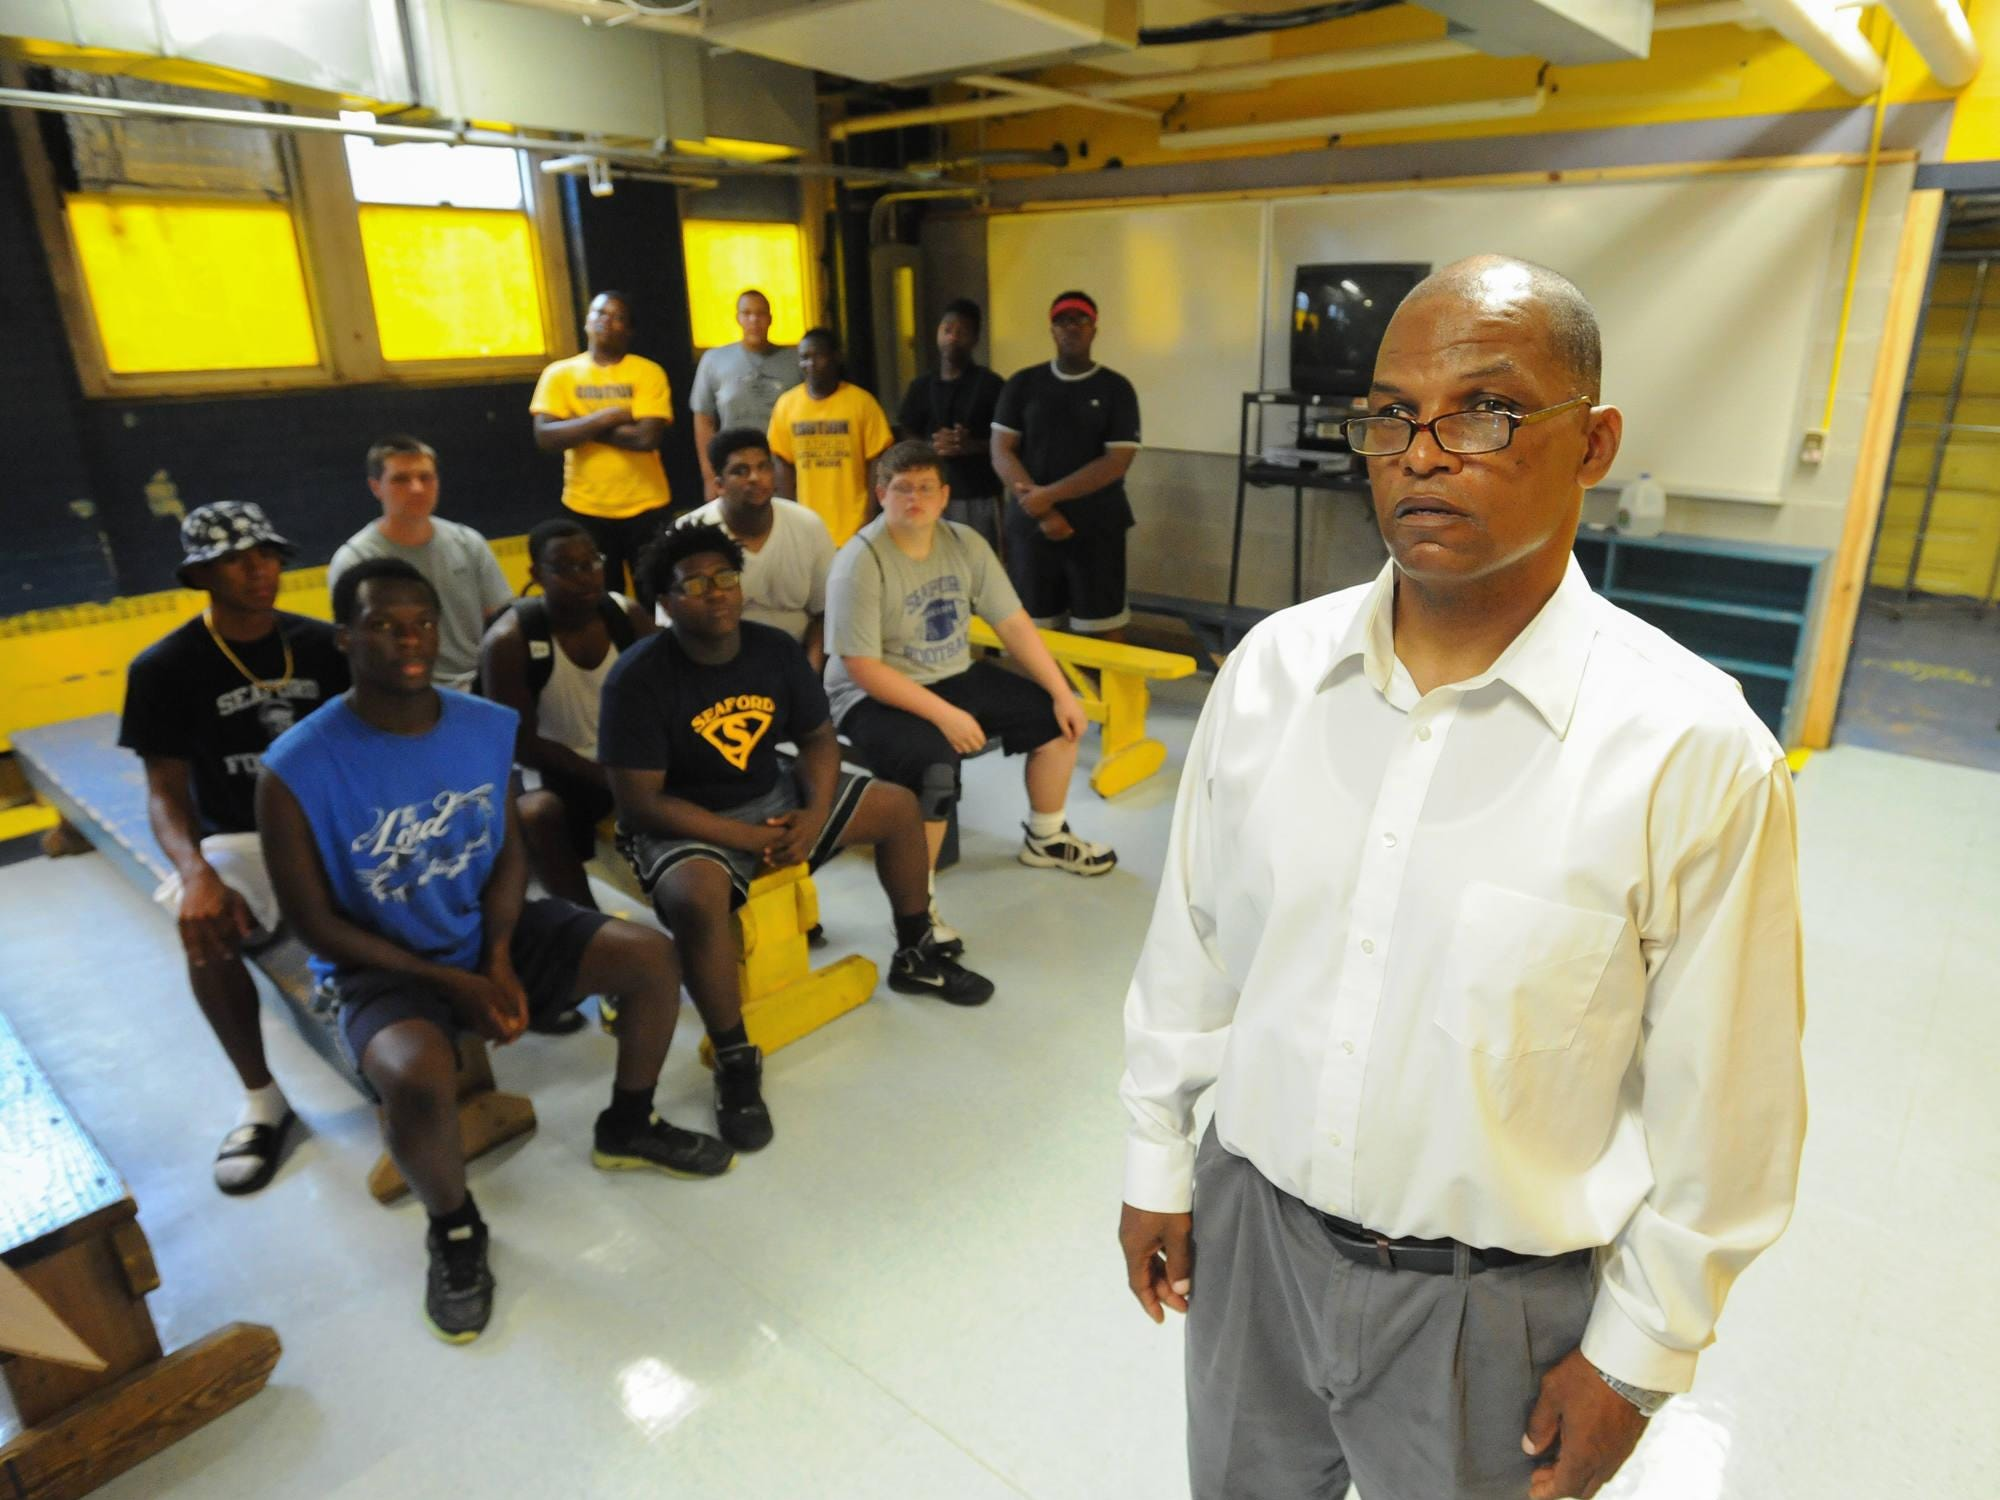 """First-year Seaford High football coach Dwayne Henry and members of his football team in """"The Pit,"""" the team's locker room at Dowd Stadium."""